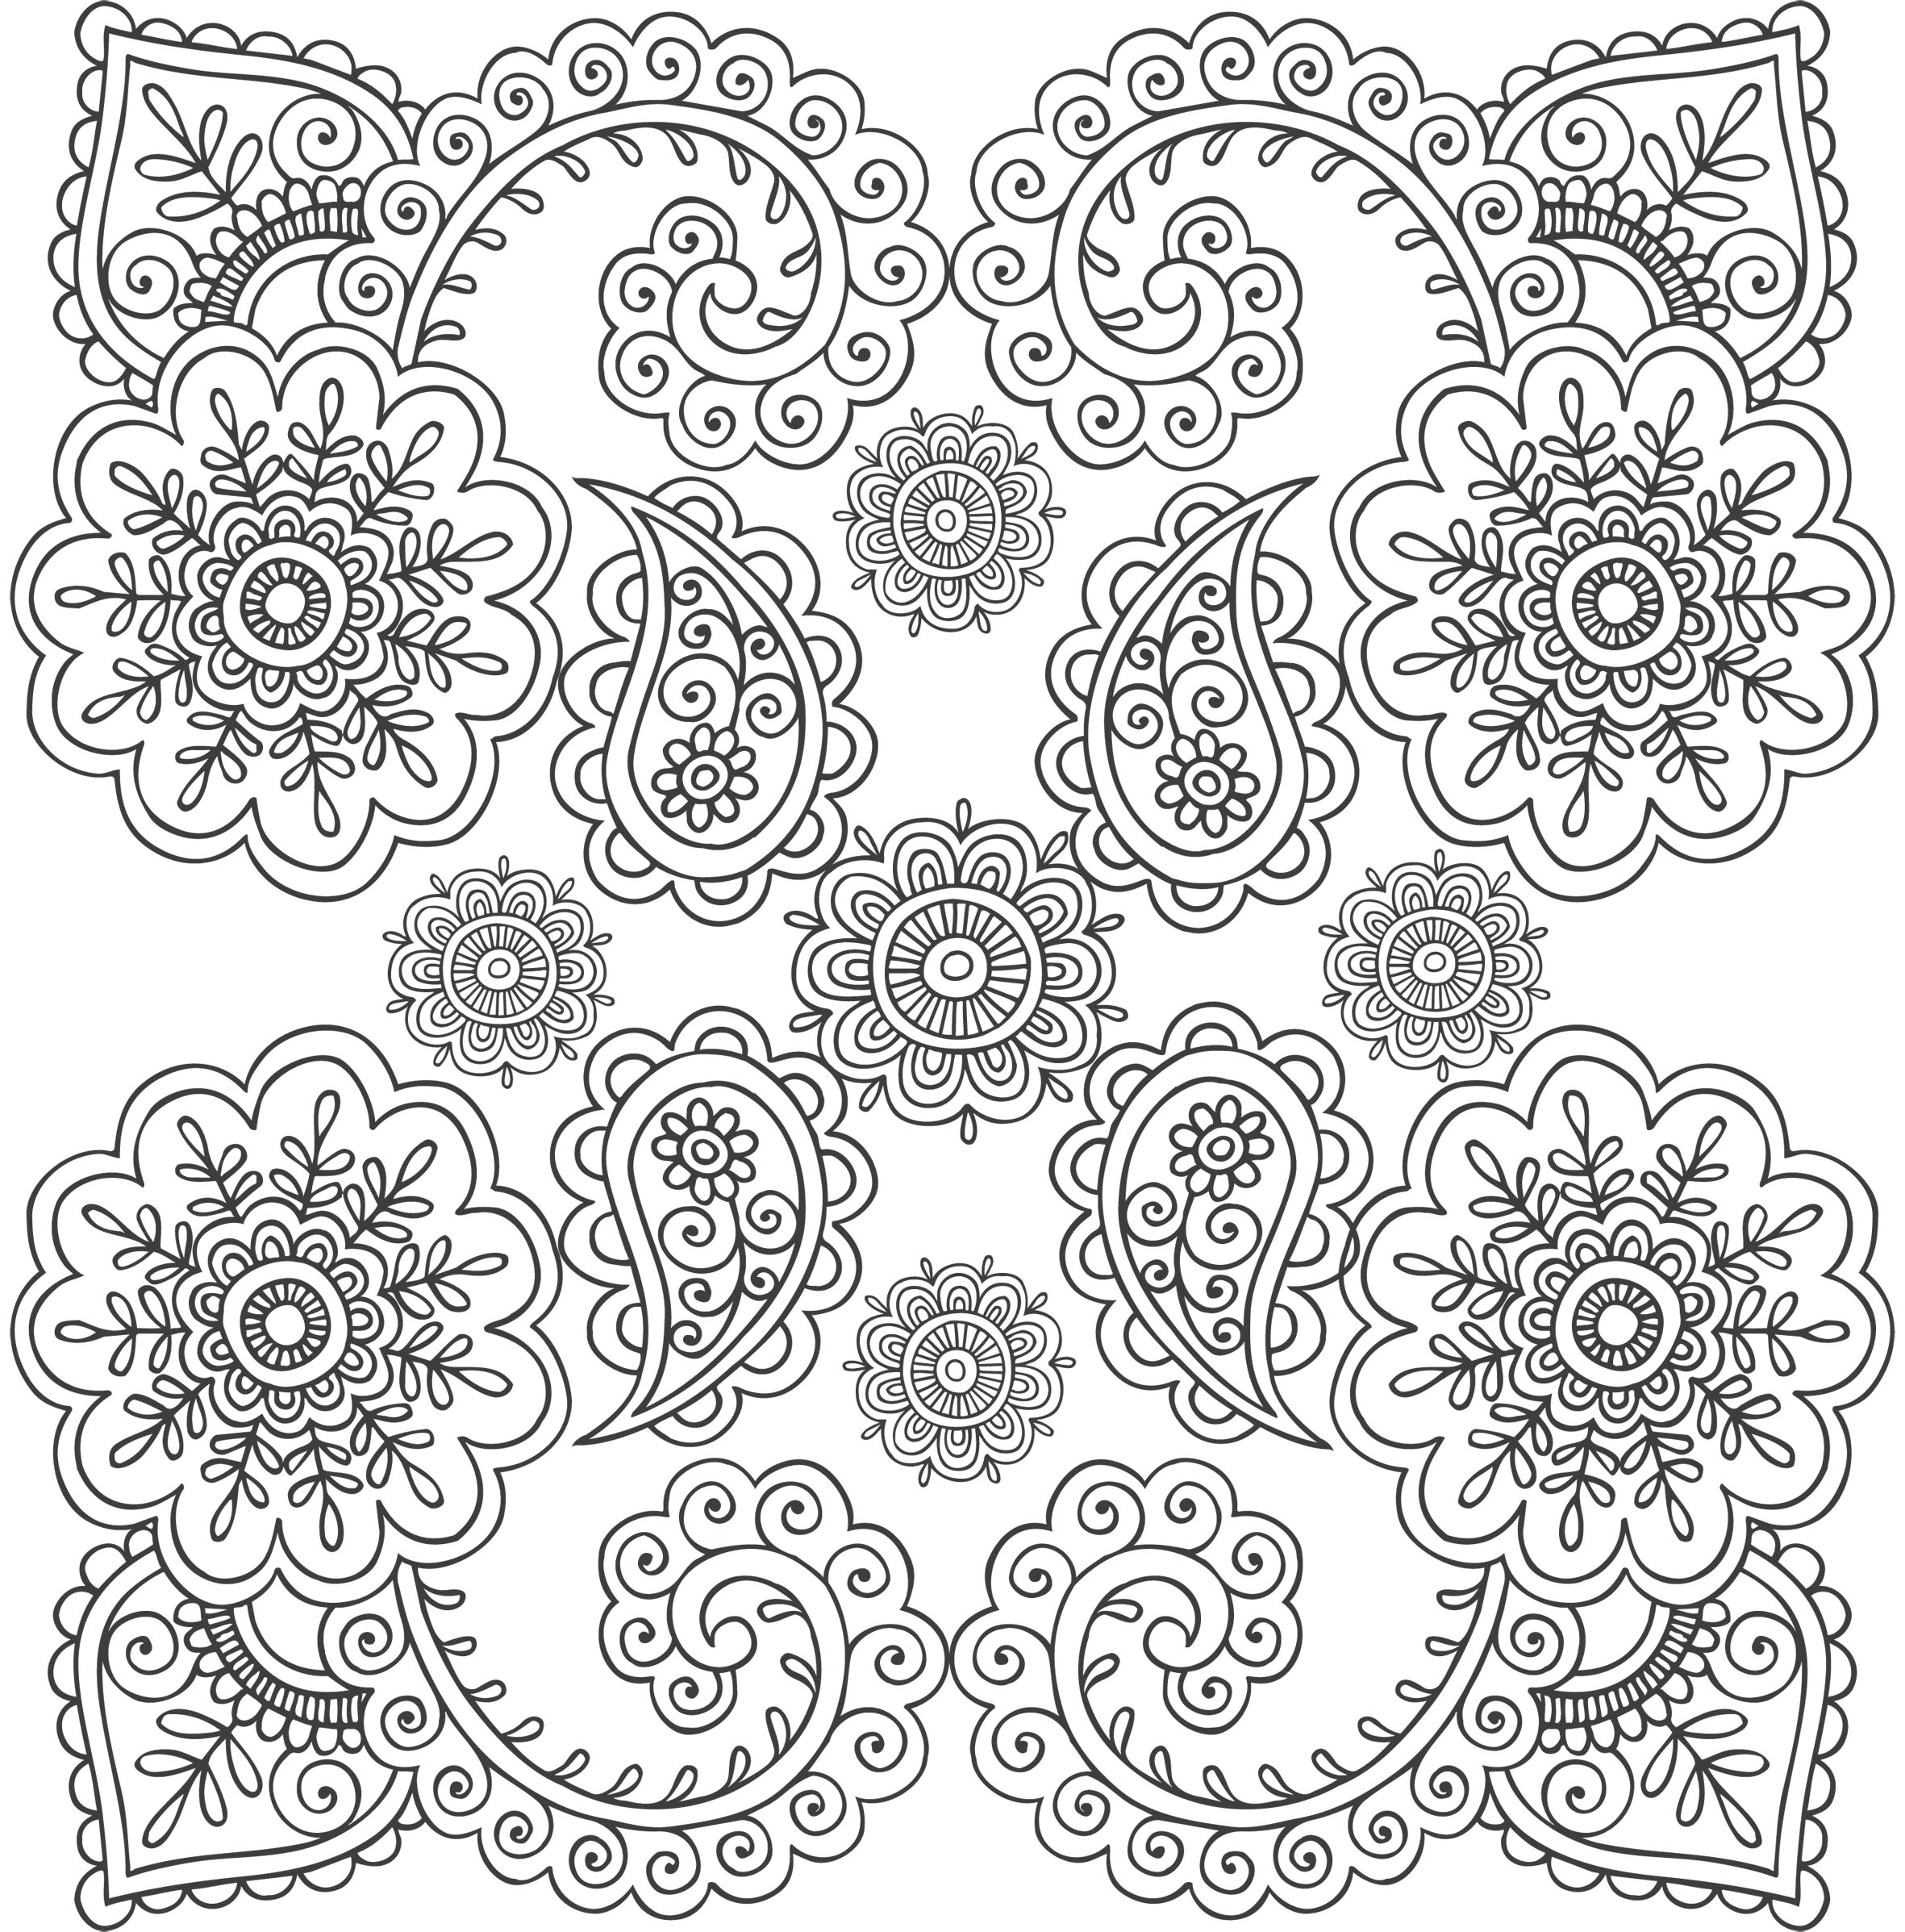 Stress relief coloring pages for kids - Stress Coloring Pages